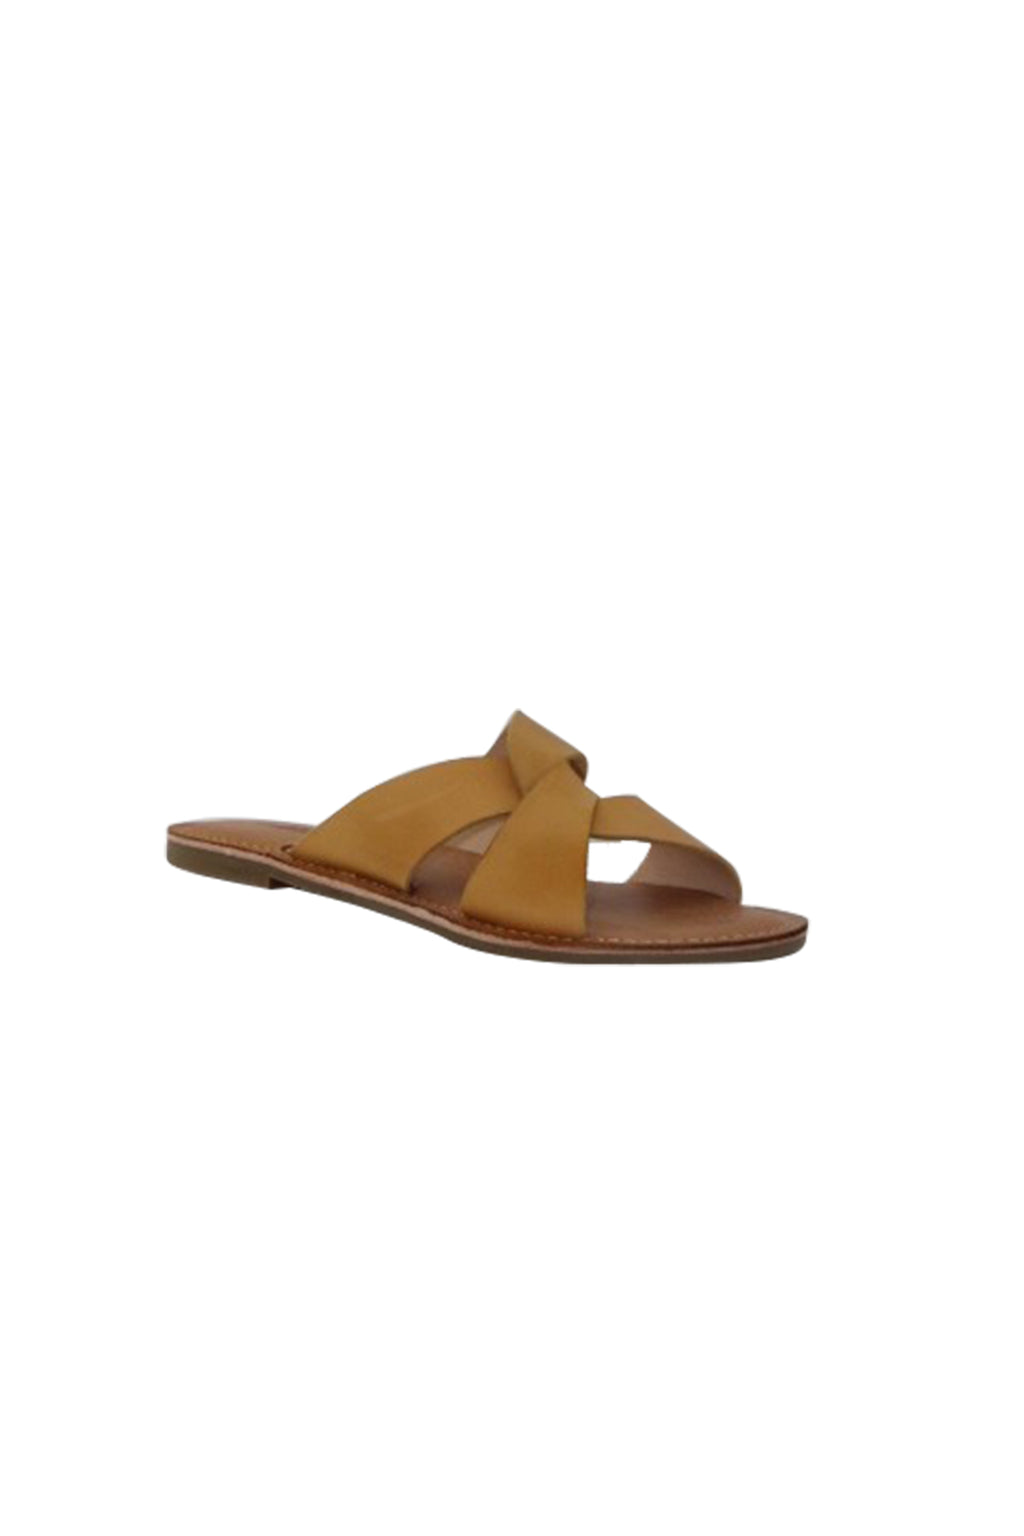 Chapel Leather Slides - Mustard